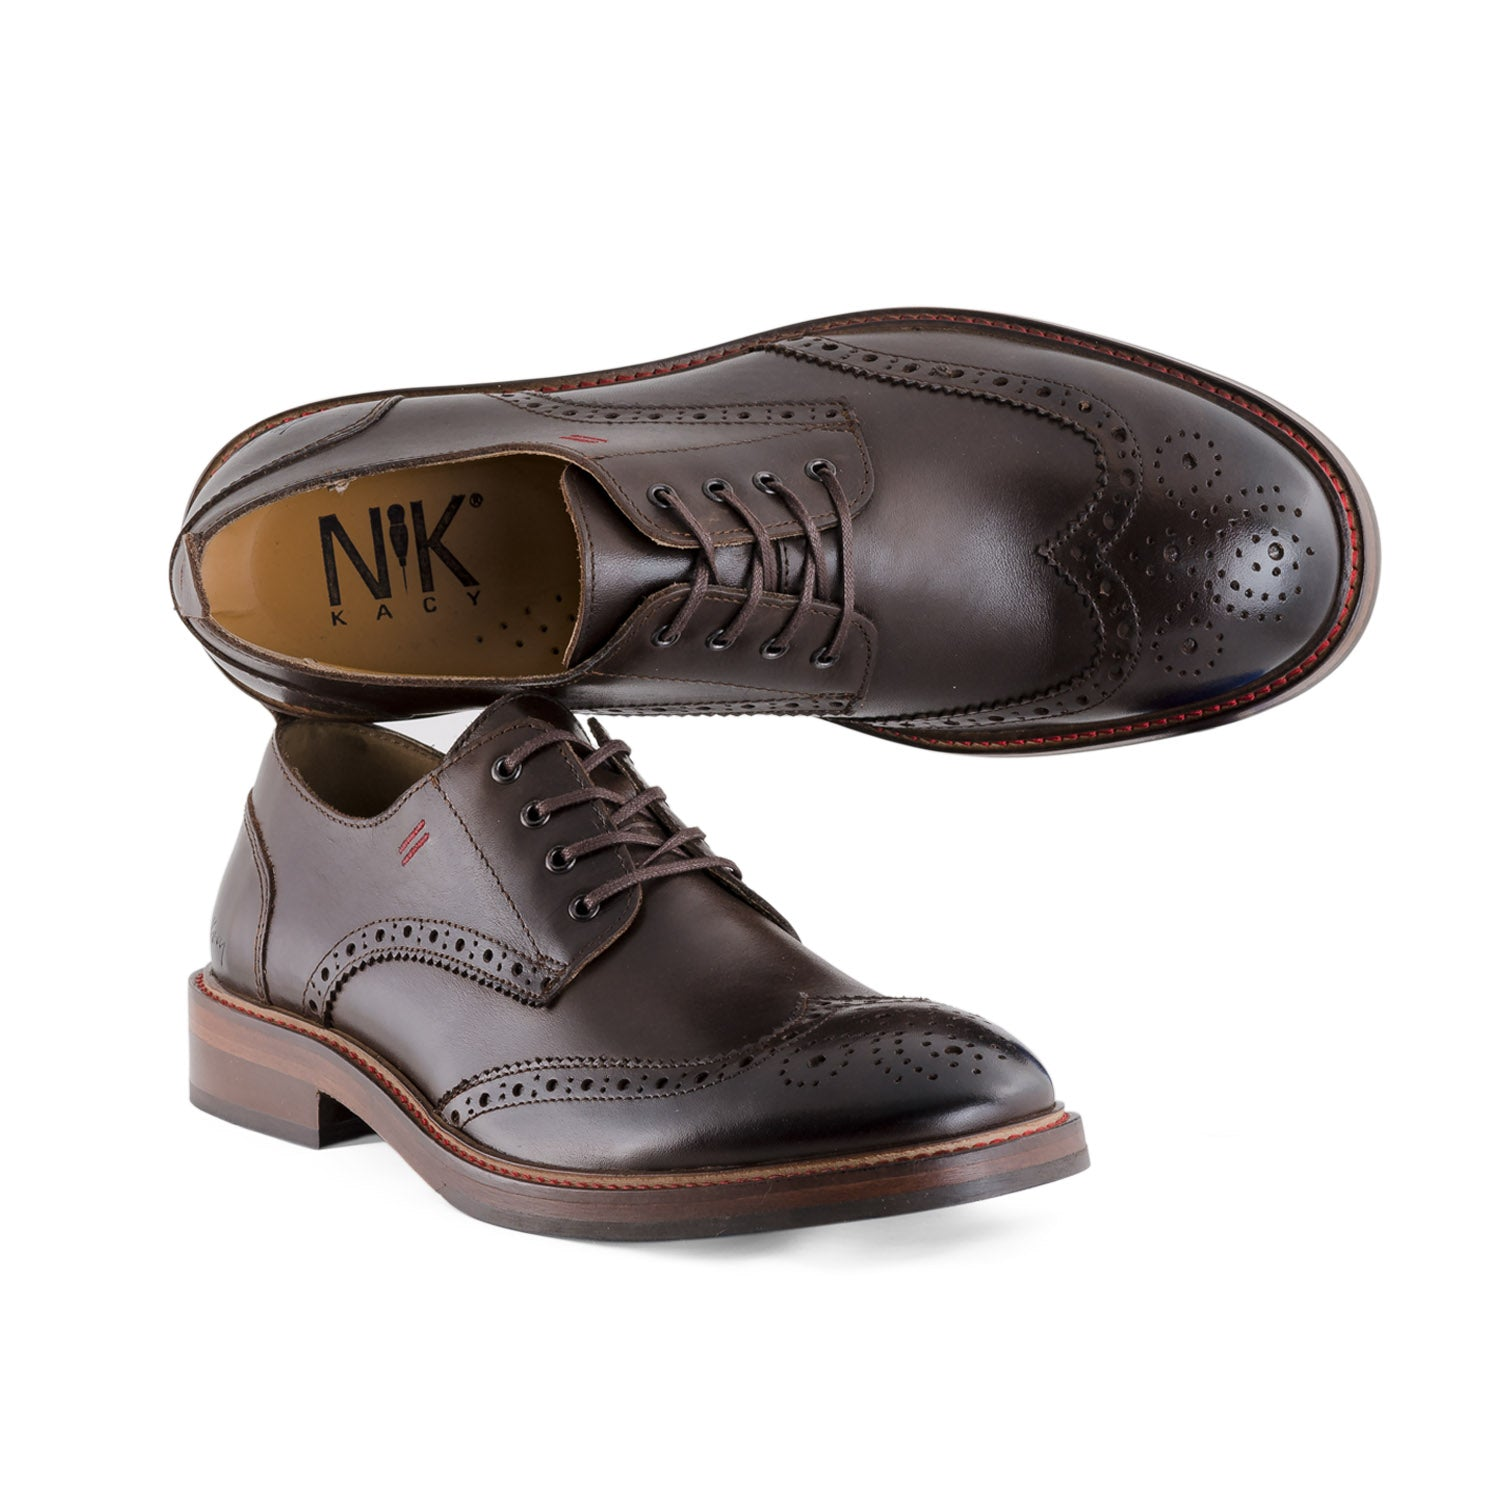 The Limited-Edition Wing-Tip Derby (3 color options) - NiK Kacy